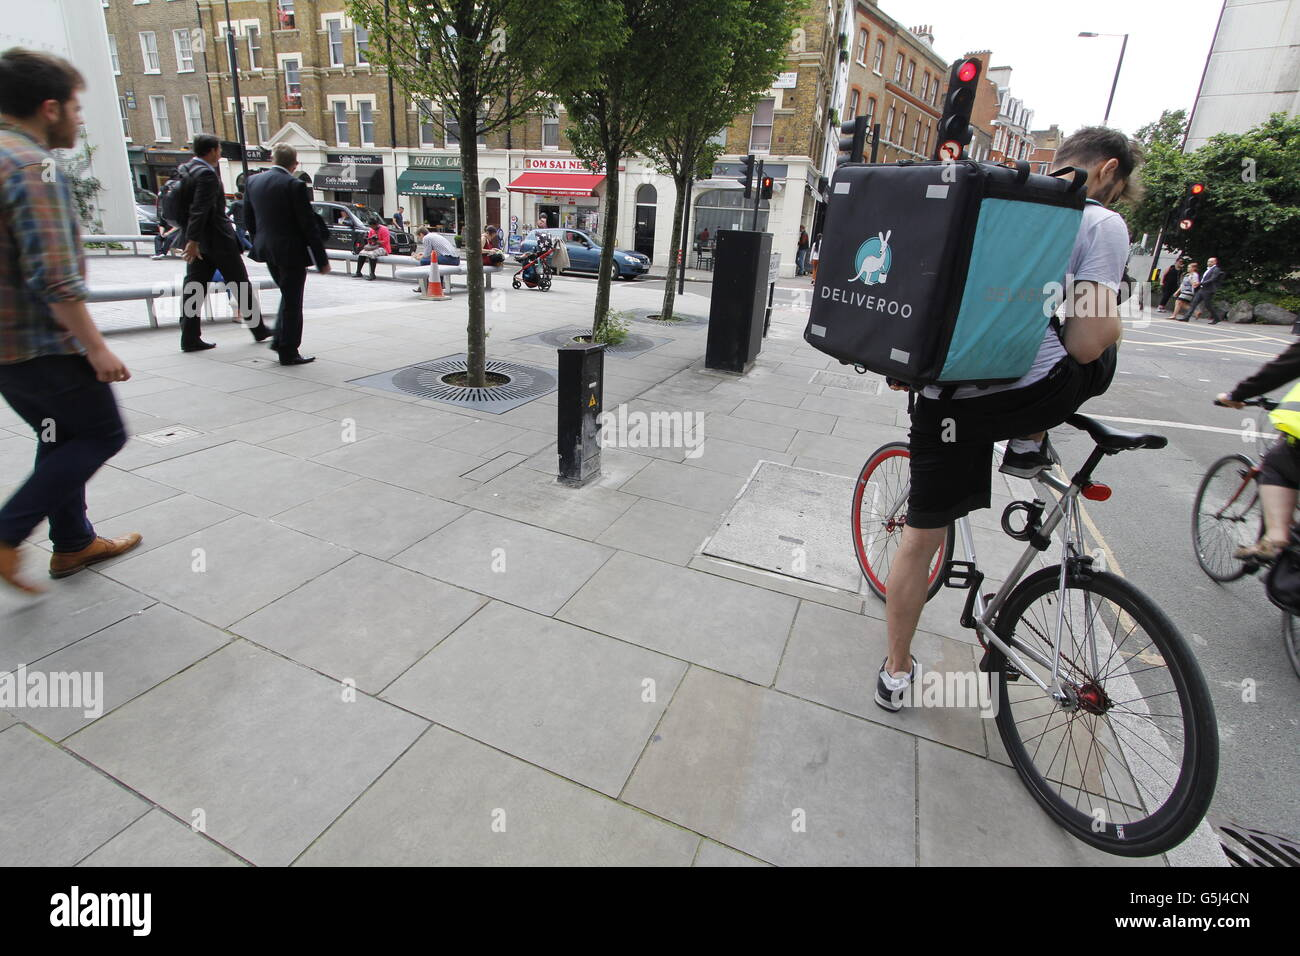 fe4273bbcd5 Deliveroo Delivery Cyclist Stock Photos & Deliveroo Delivery Cyclist ...